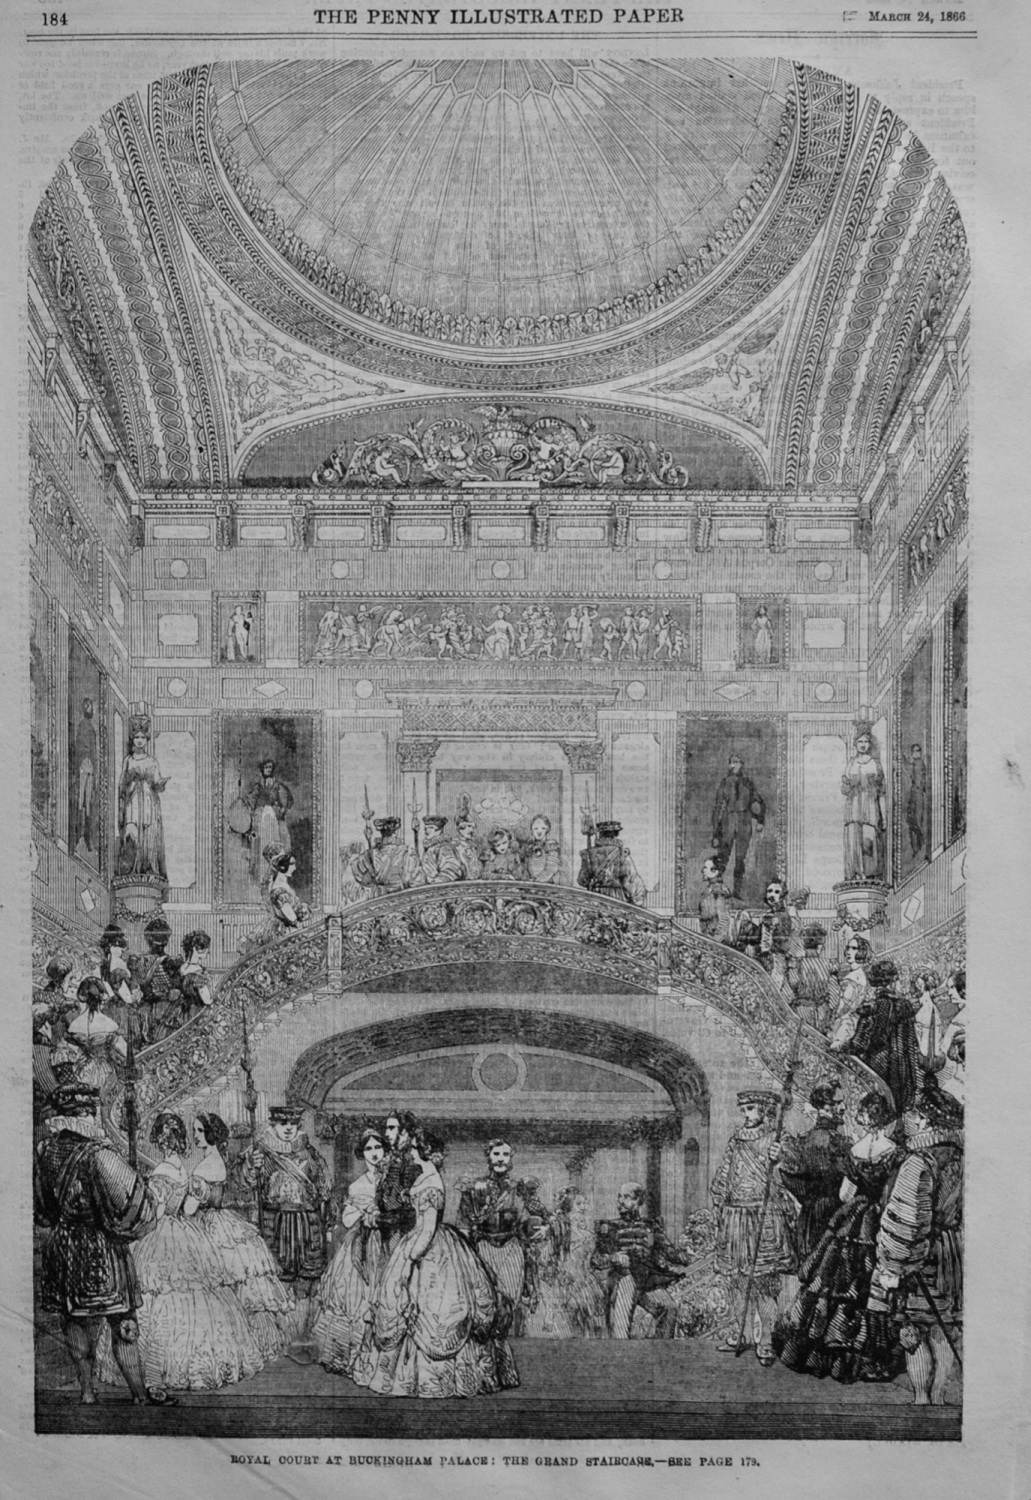 Royal Court at Buckingham Palace : The Grand Staircase.  1866.